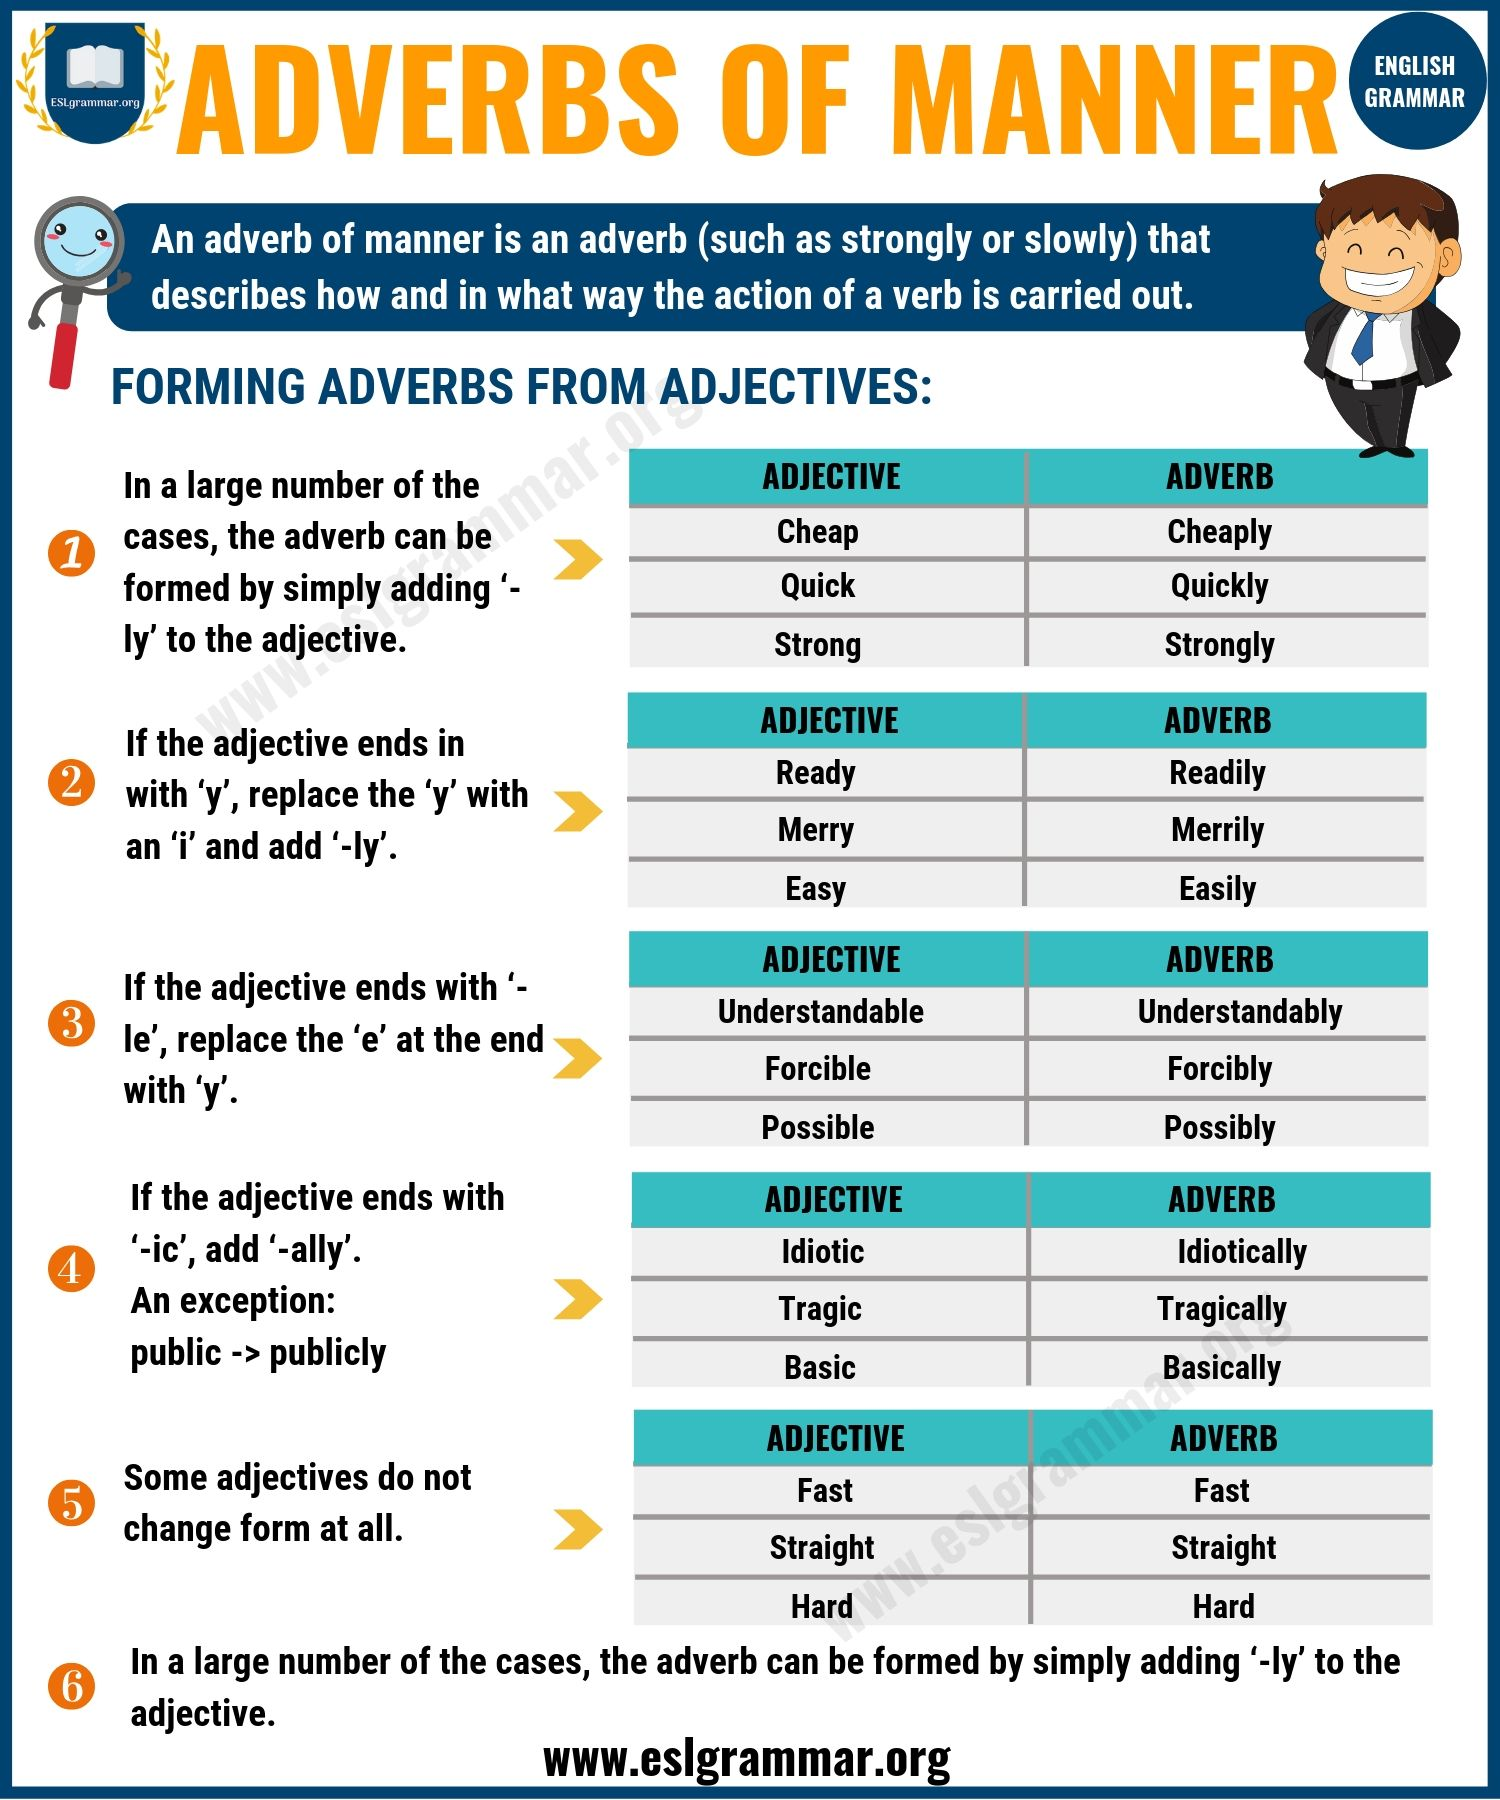 Contoh Adverb Of Manner : contoh, adverb, manner, Adverbs, Manner, Definition, Rules, Examples, Grammar, English, Cute766